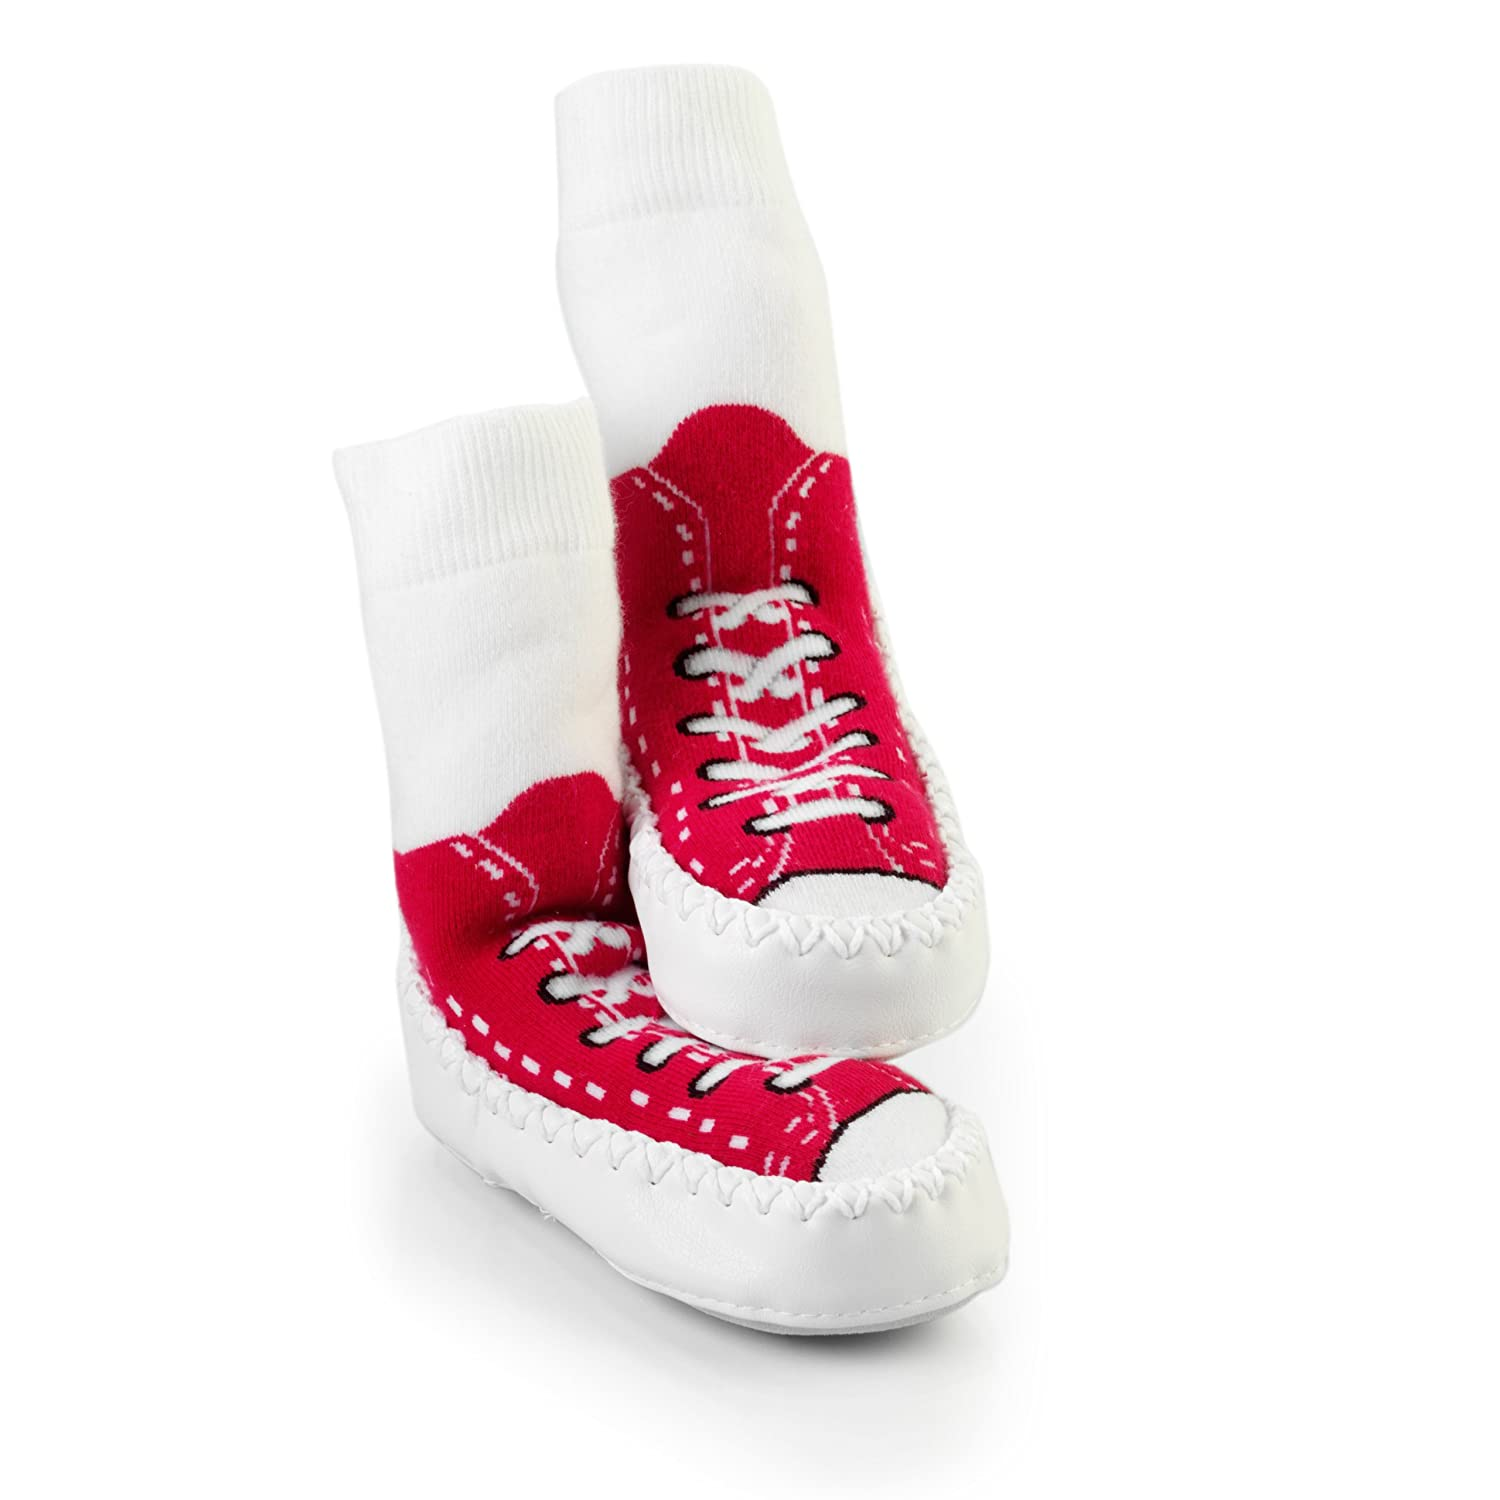 Mocc Ons Toddler and Baby Moccasin Style Slipper Socks